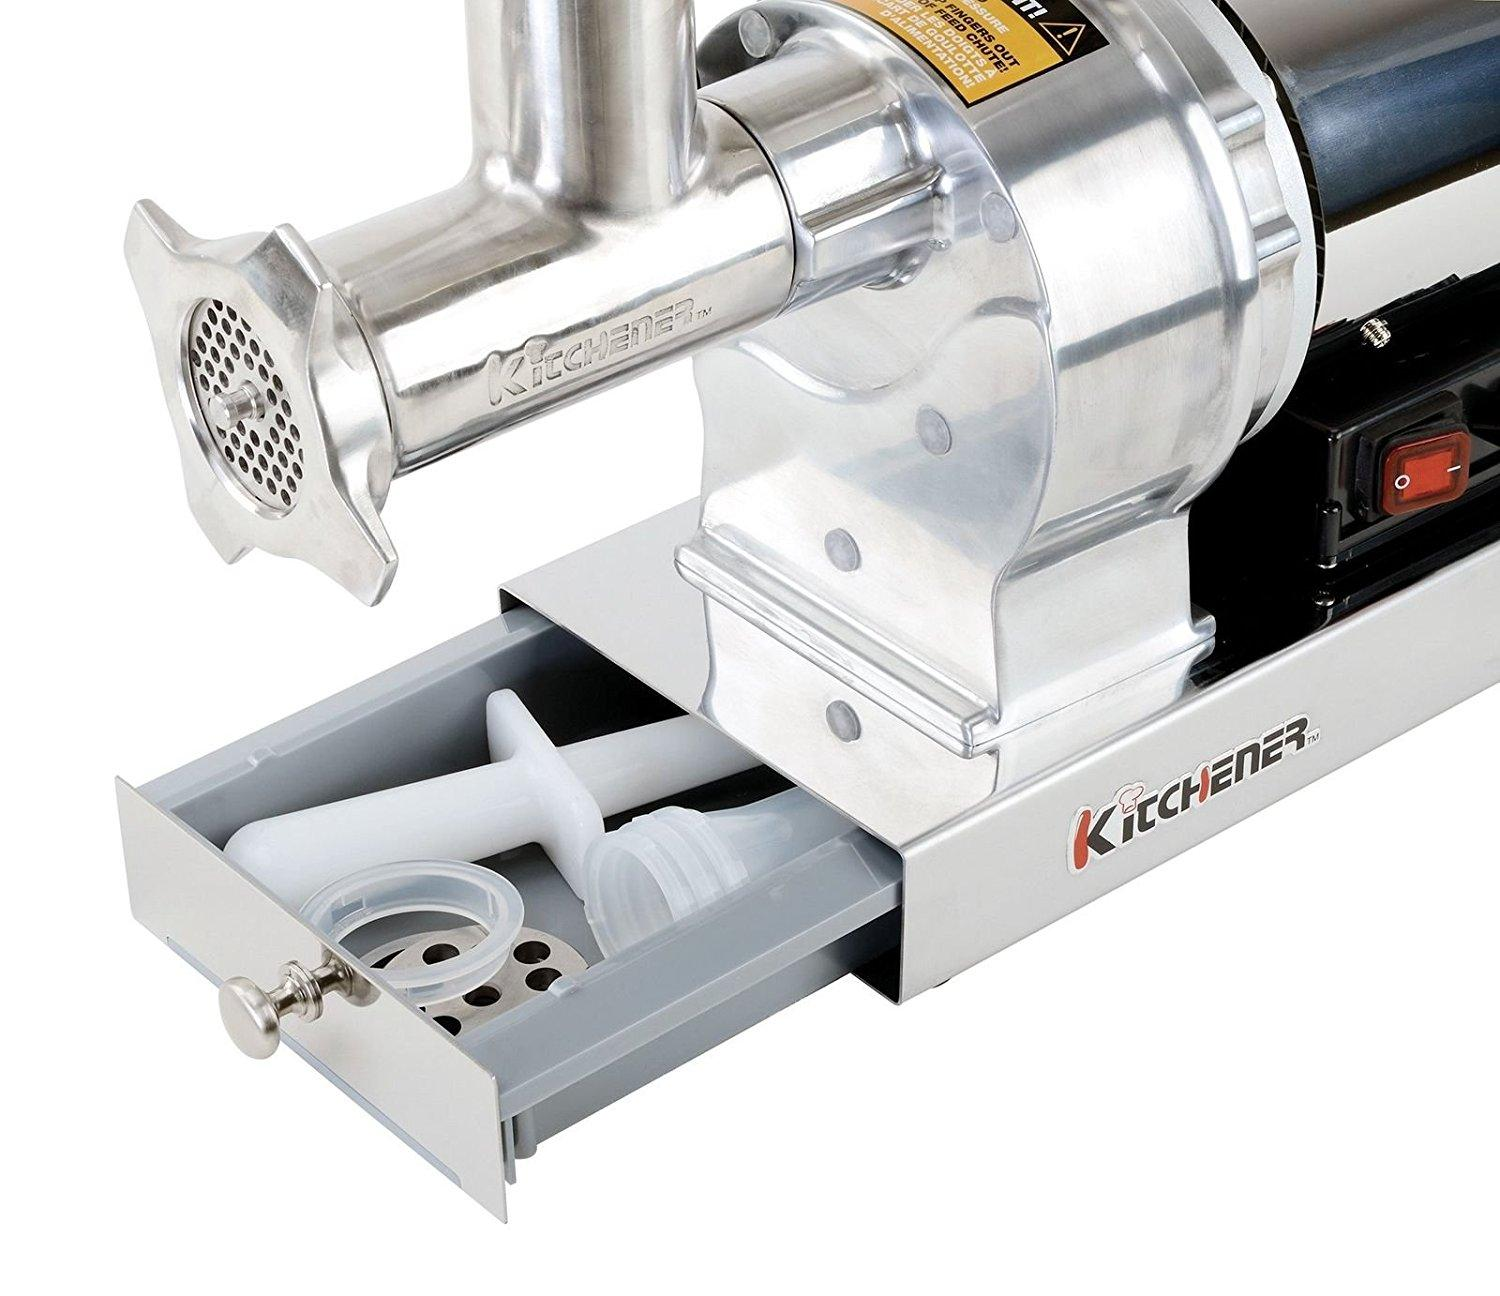 KITCHENER Heavy Duty Commercial Grade Electric Stainless Steel High Grinder